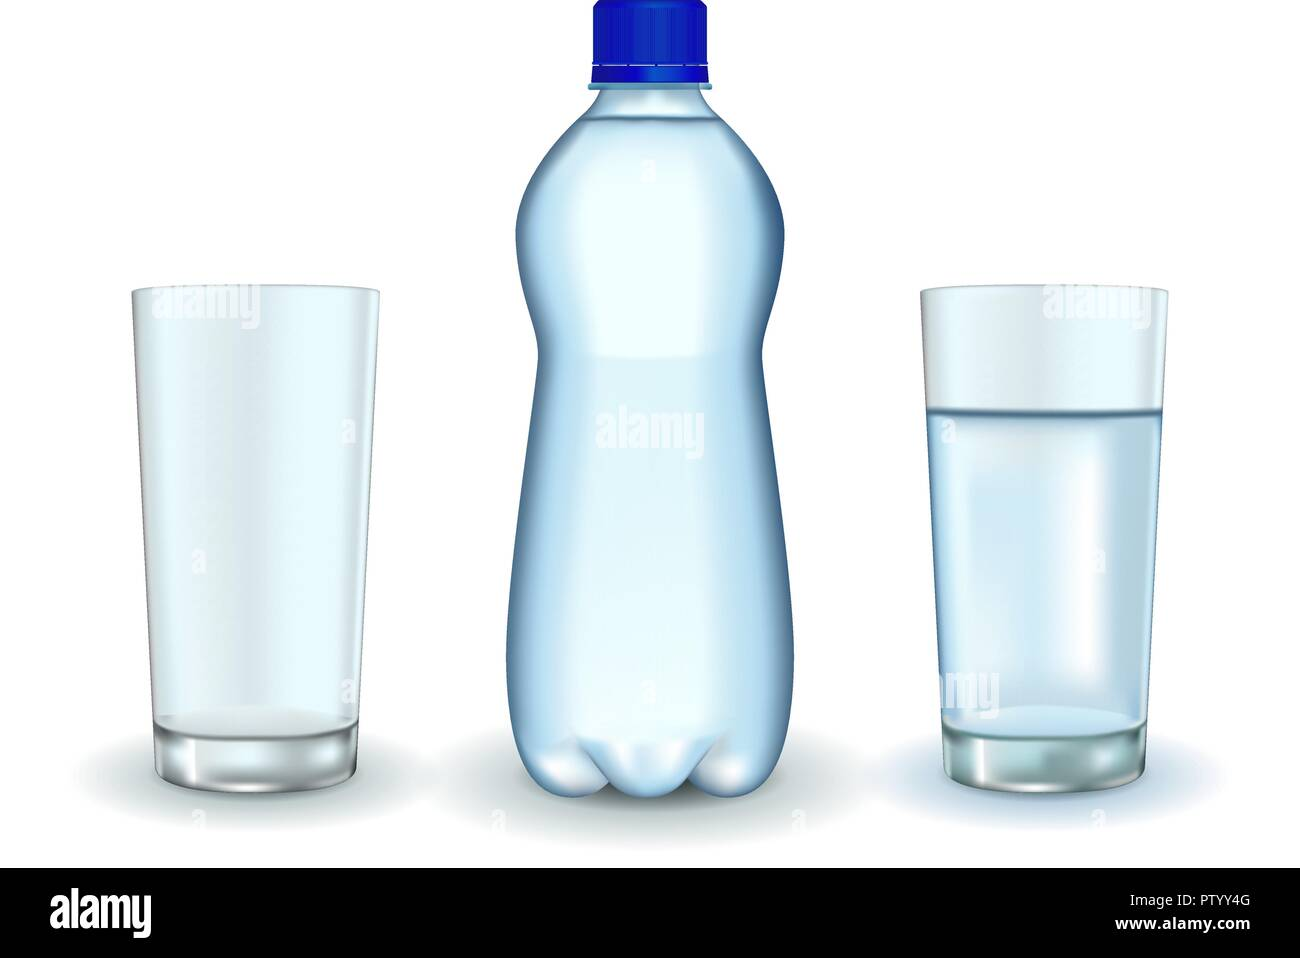 Bottle of water with glasses - Stock Image